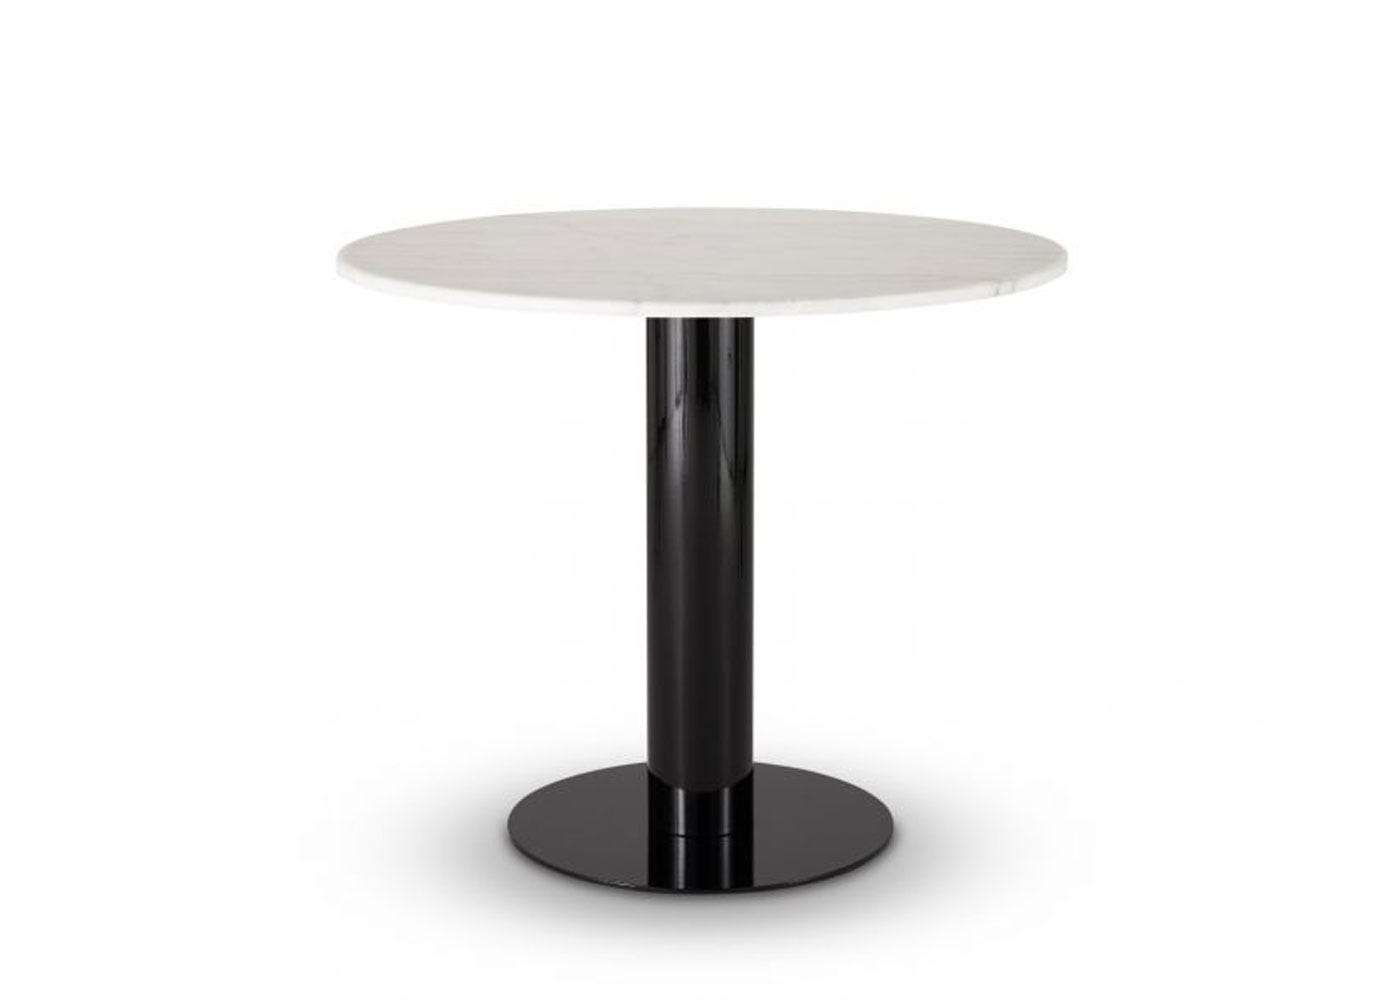 Tube dining table with white marble top